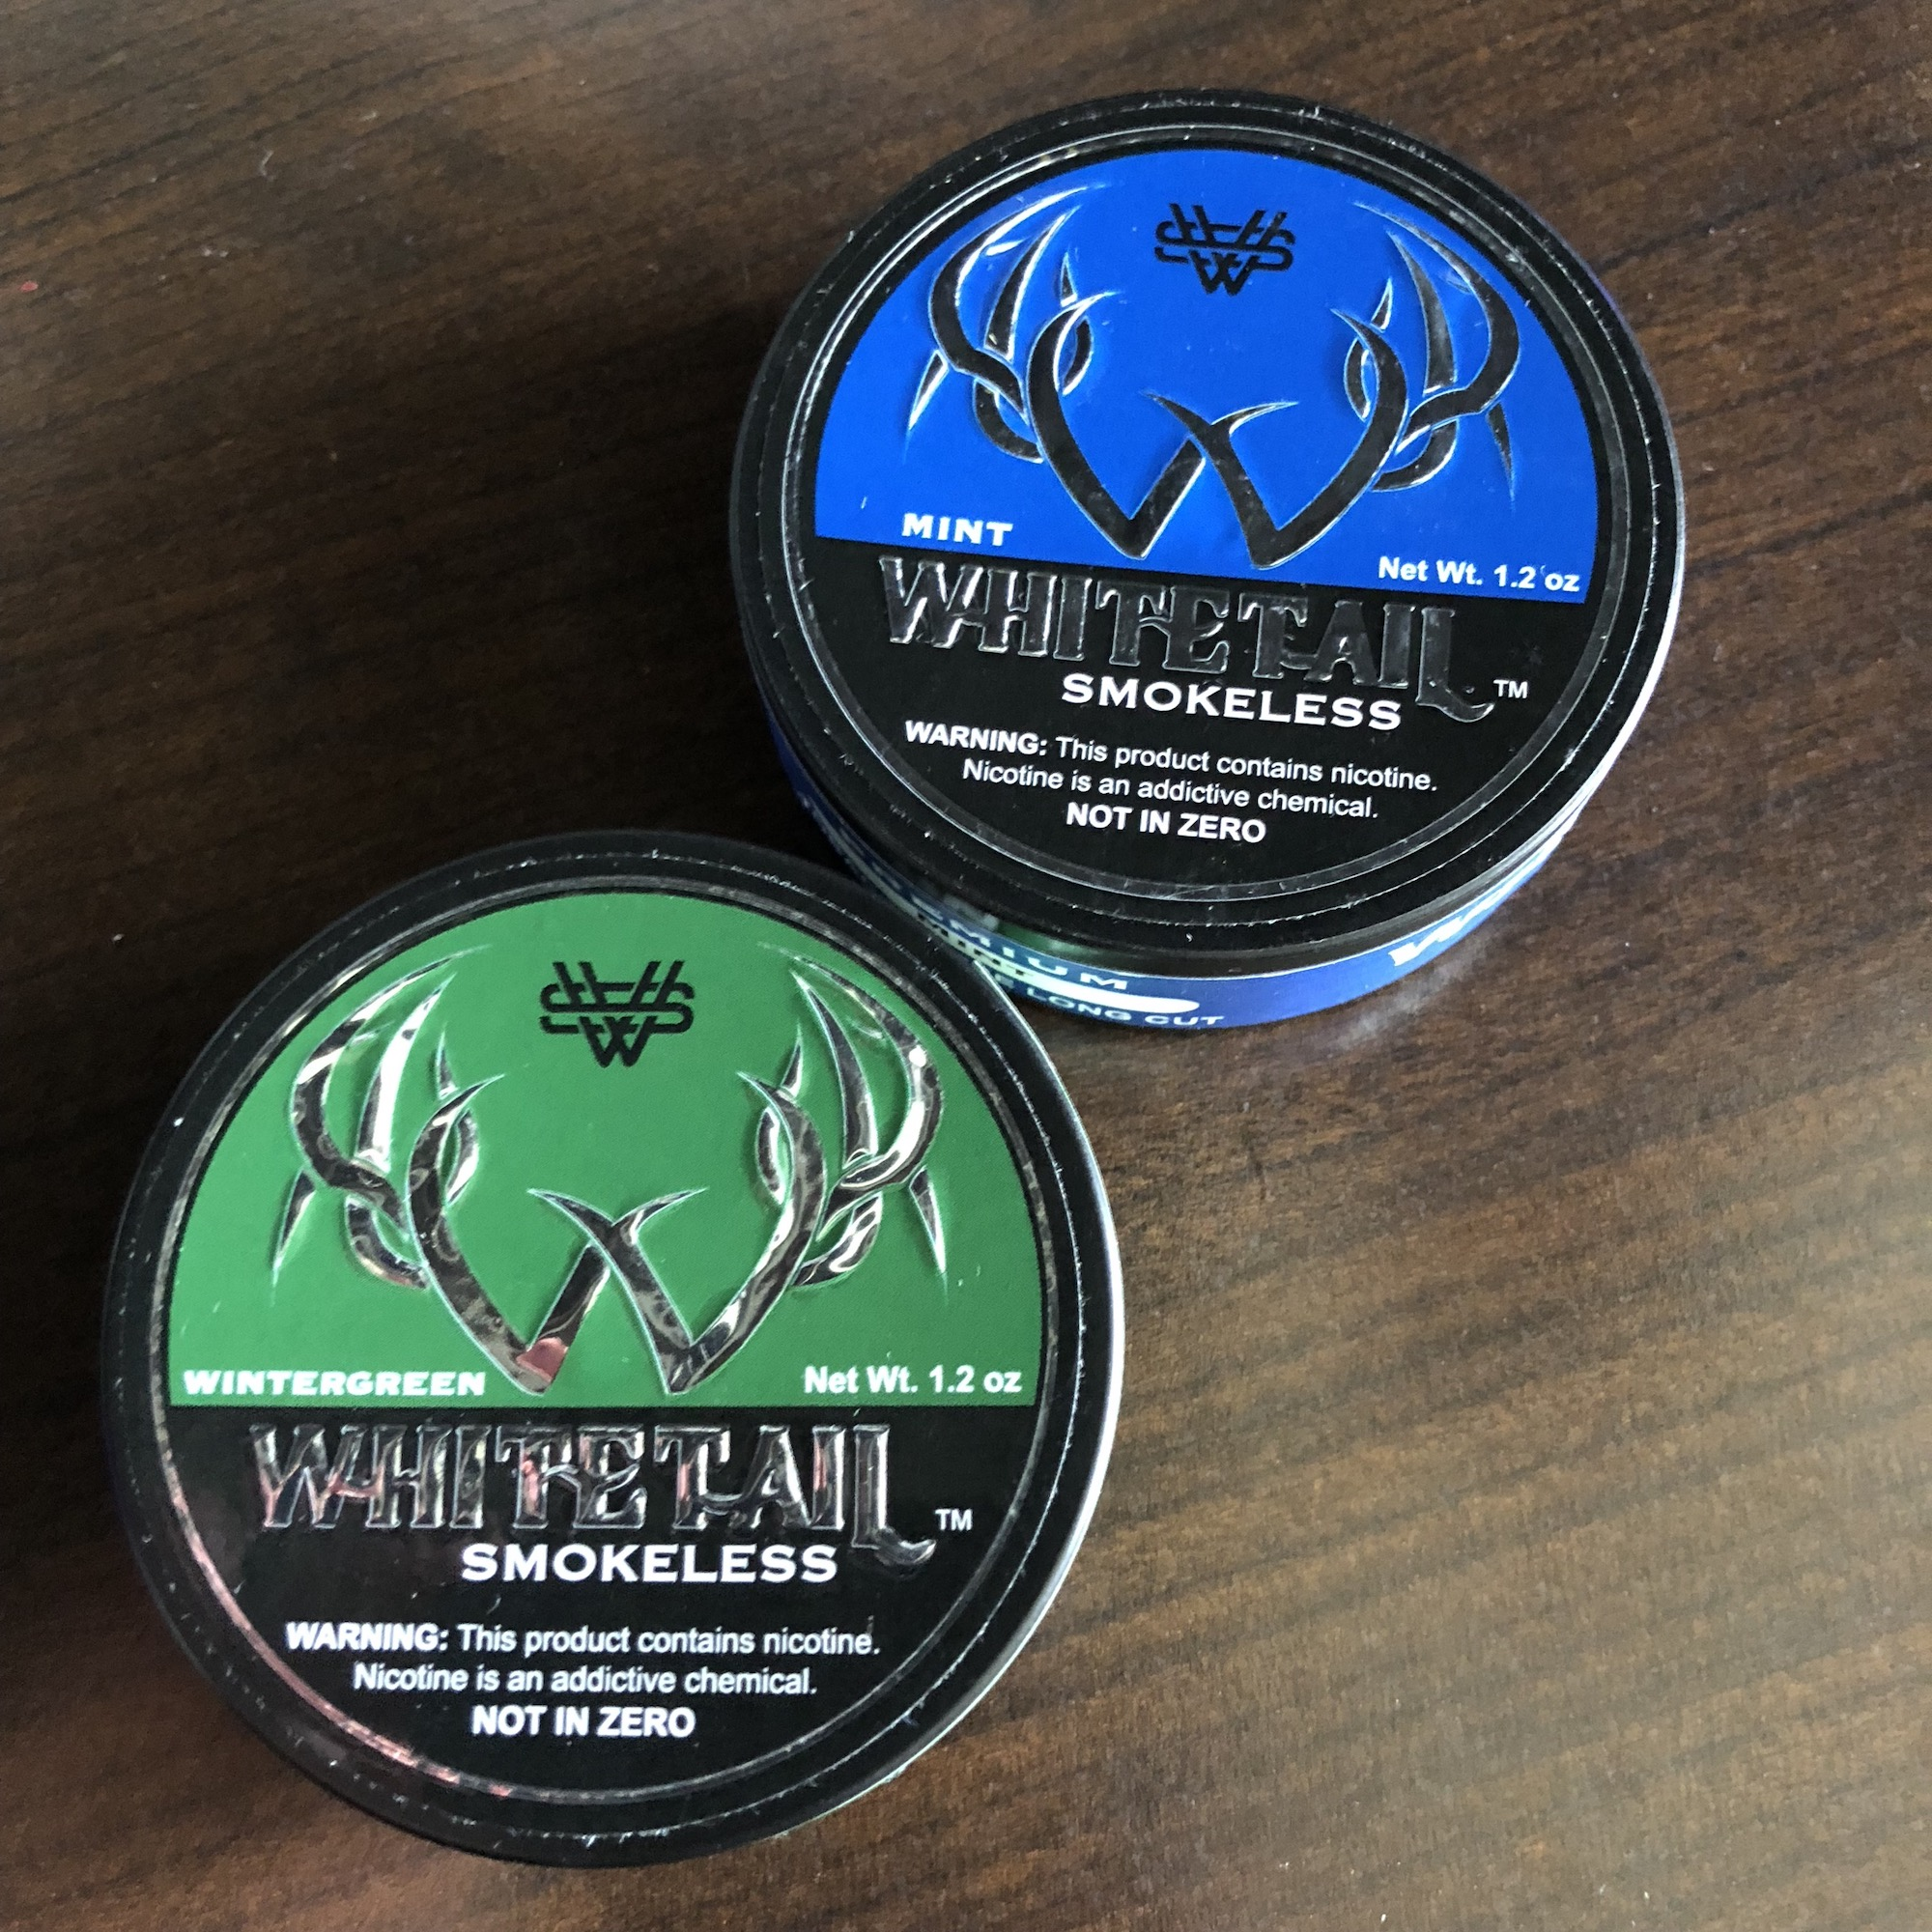 Whitetail Smokeless ZERO Nicotine Review - KillTheCan org